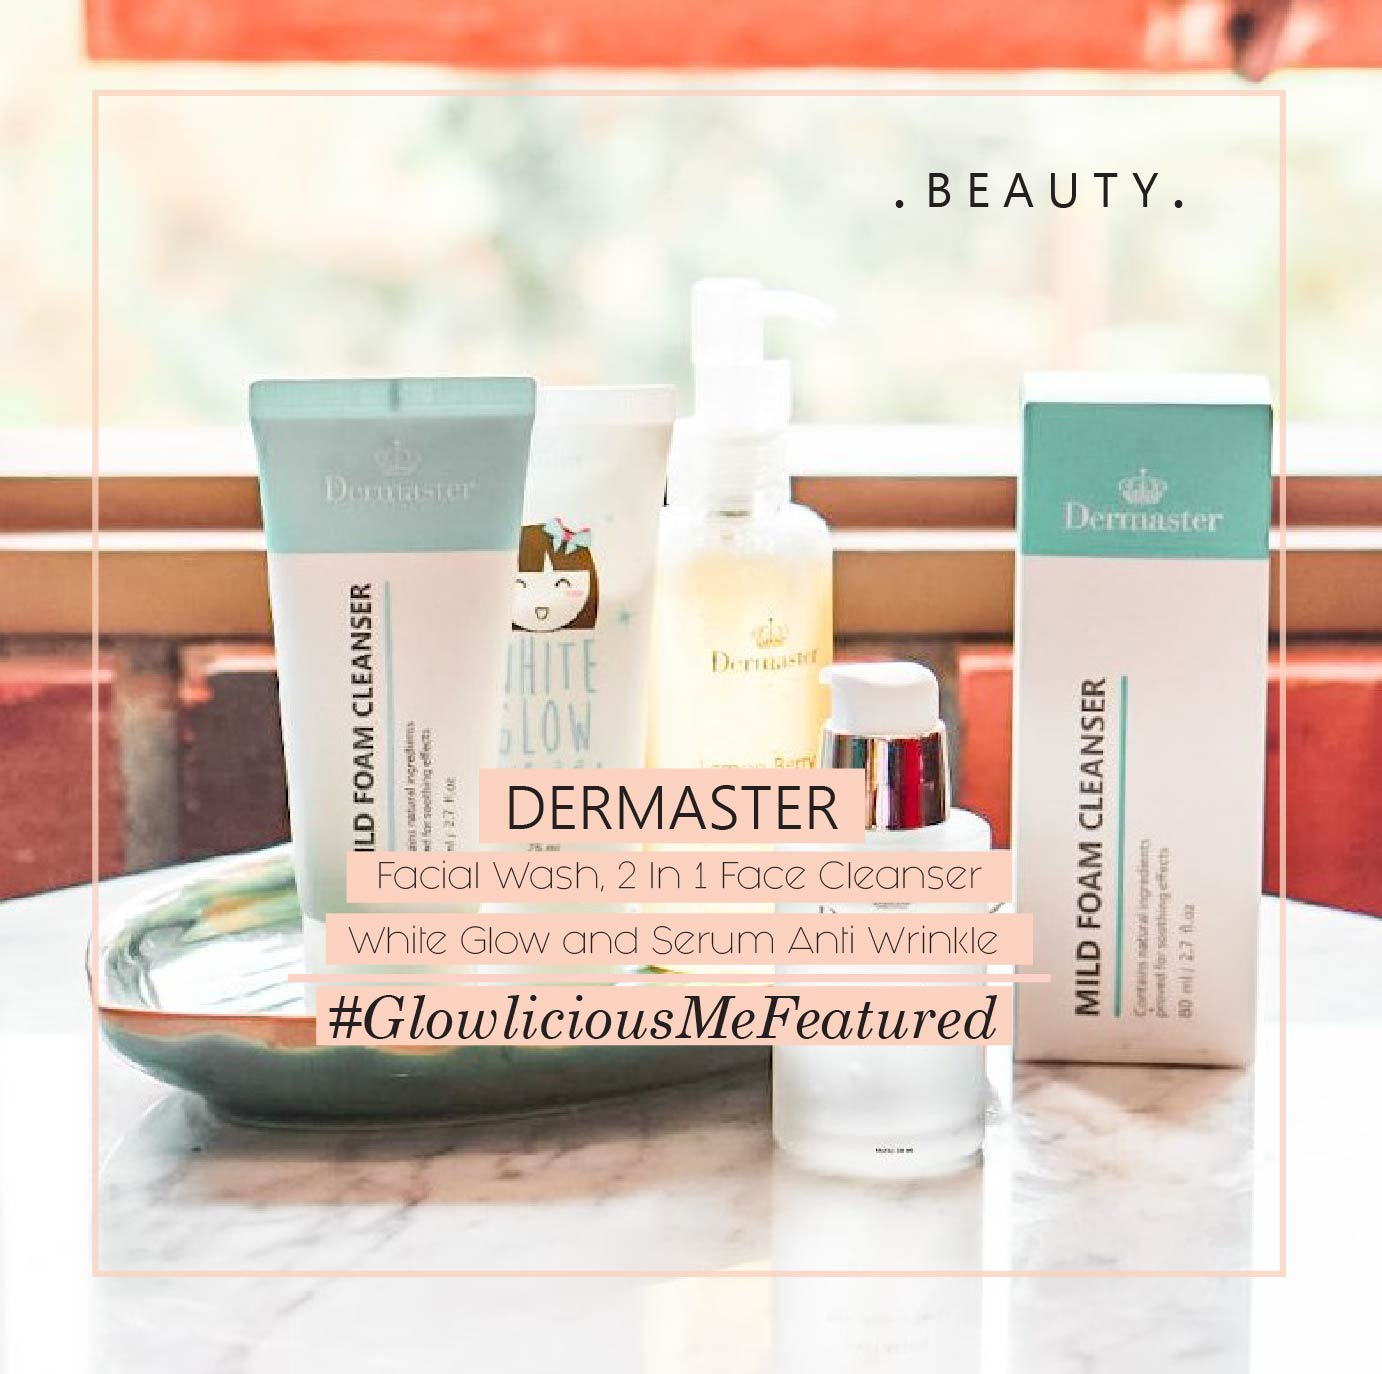 #GlowliciousMeFeatured – Dermaseter Skincare